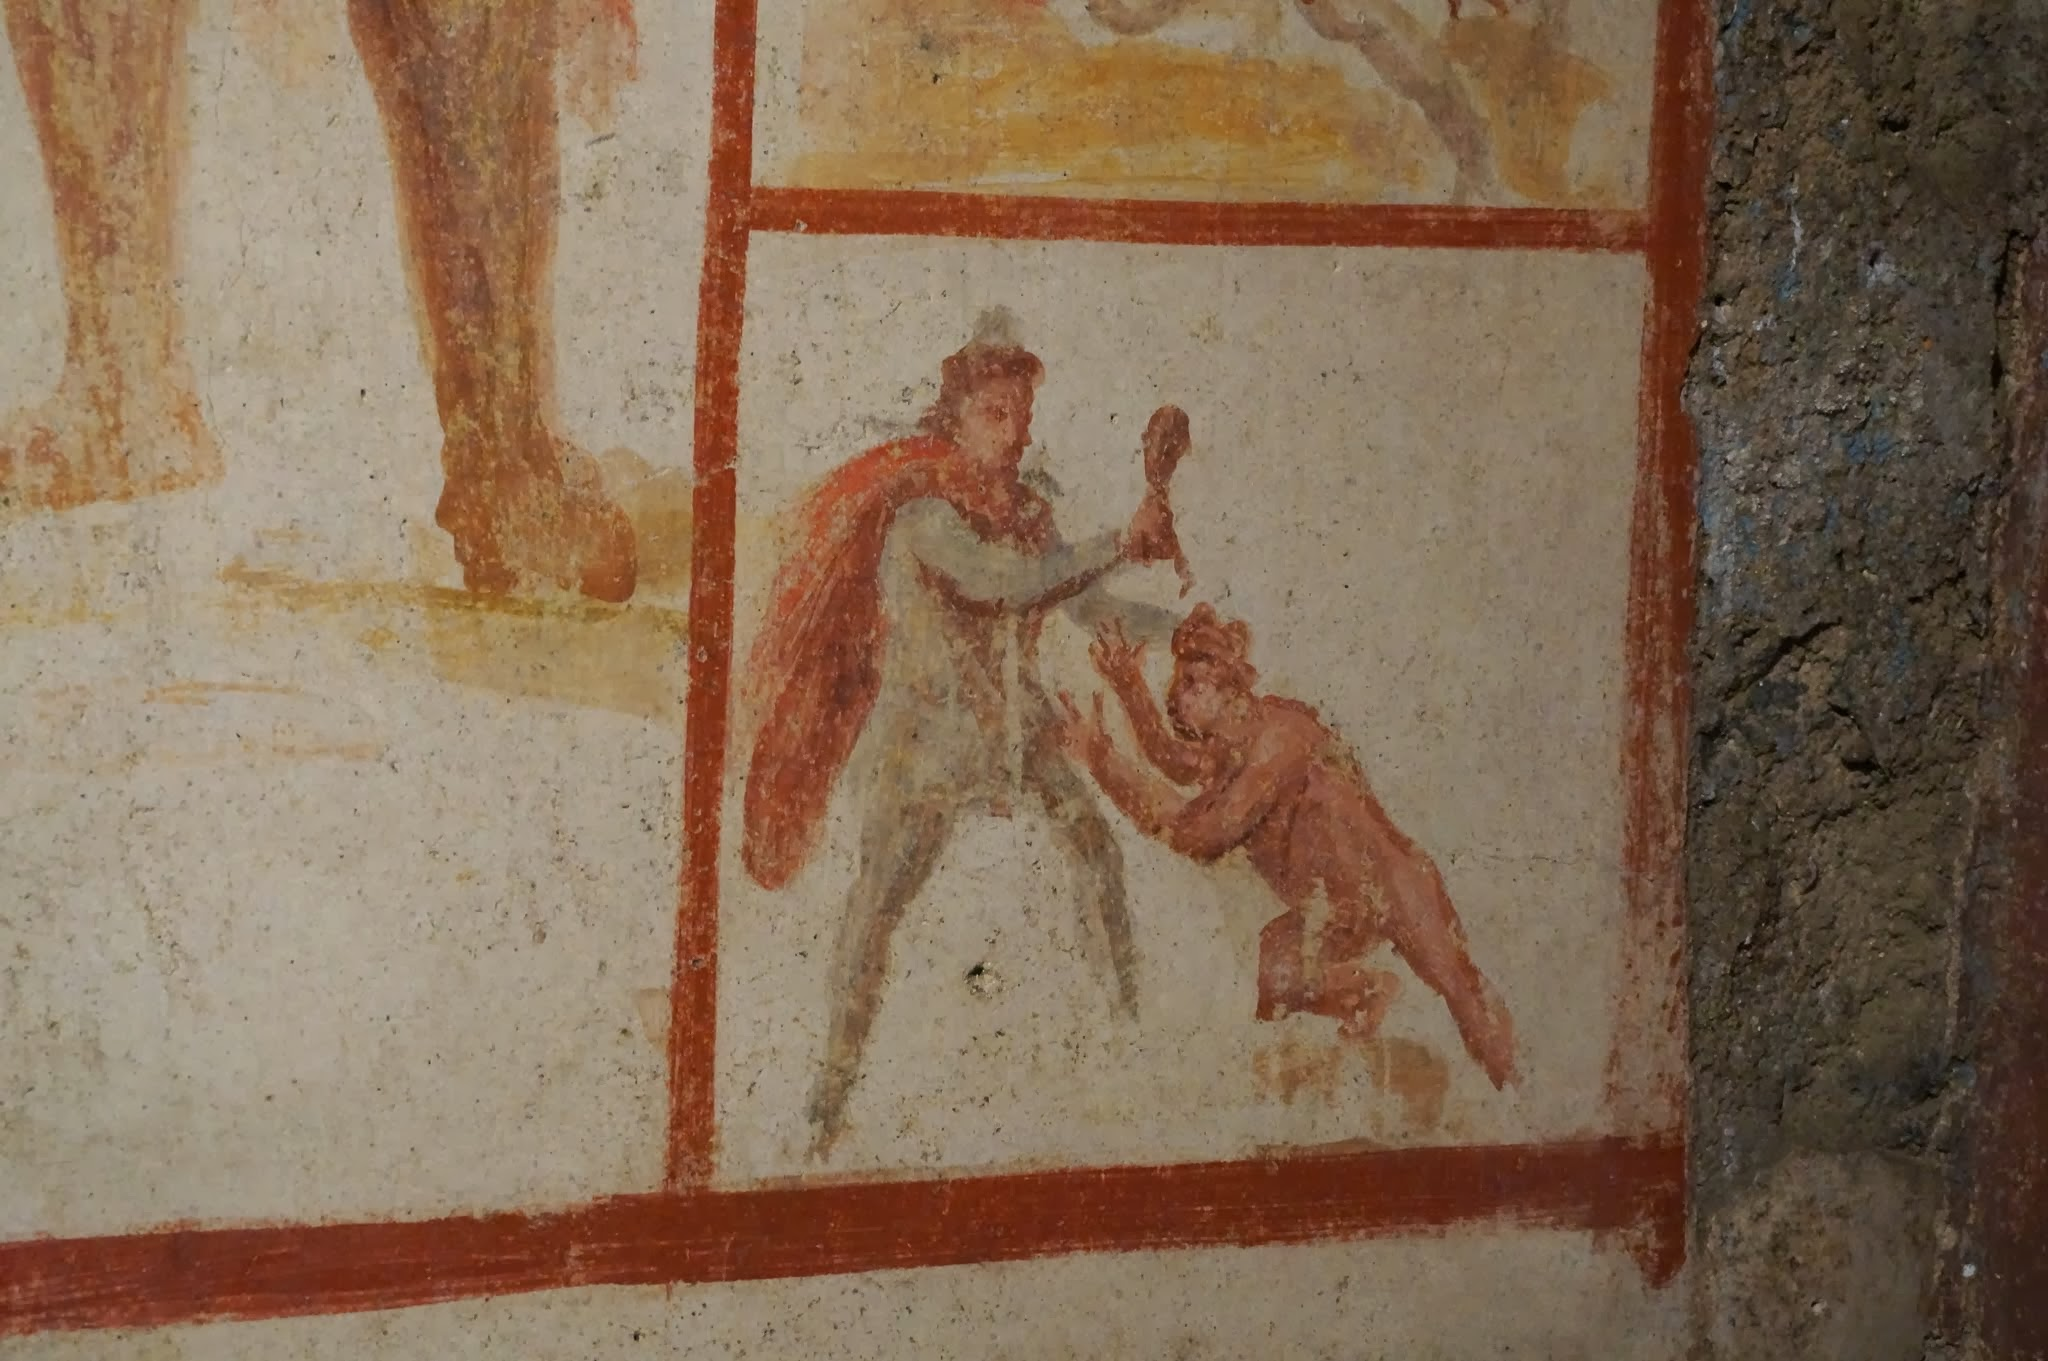 Detail of lower-right-hand corner of the Barberini Mithræum fresco tauroctony, showing Sol doing some kind of obeisance to Mithras, who is wielding the bull's shoulder (?)